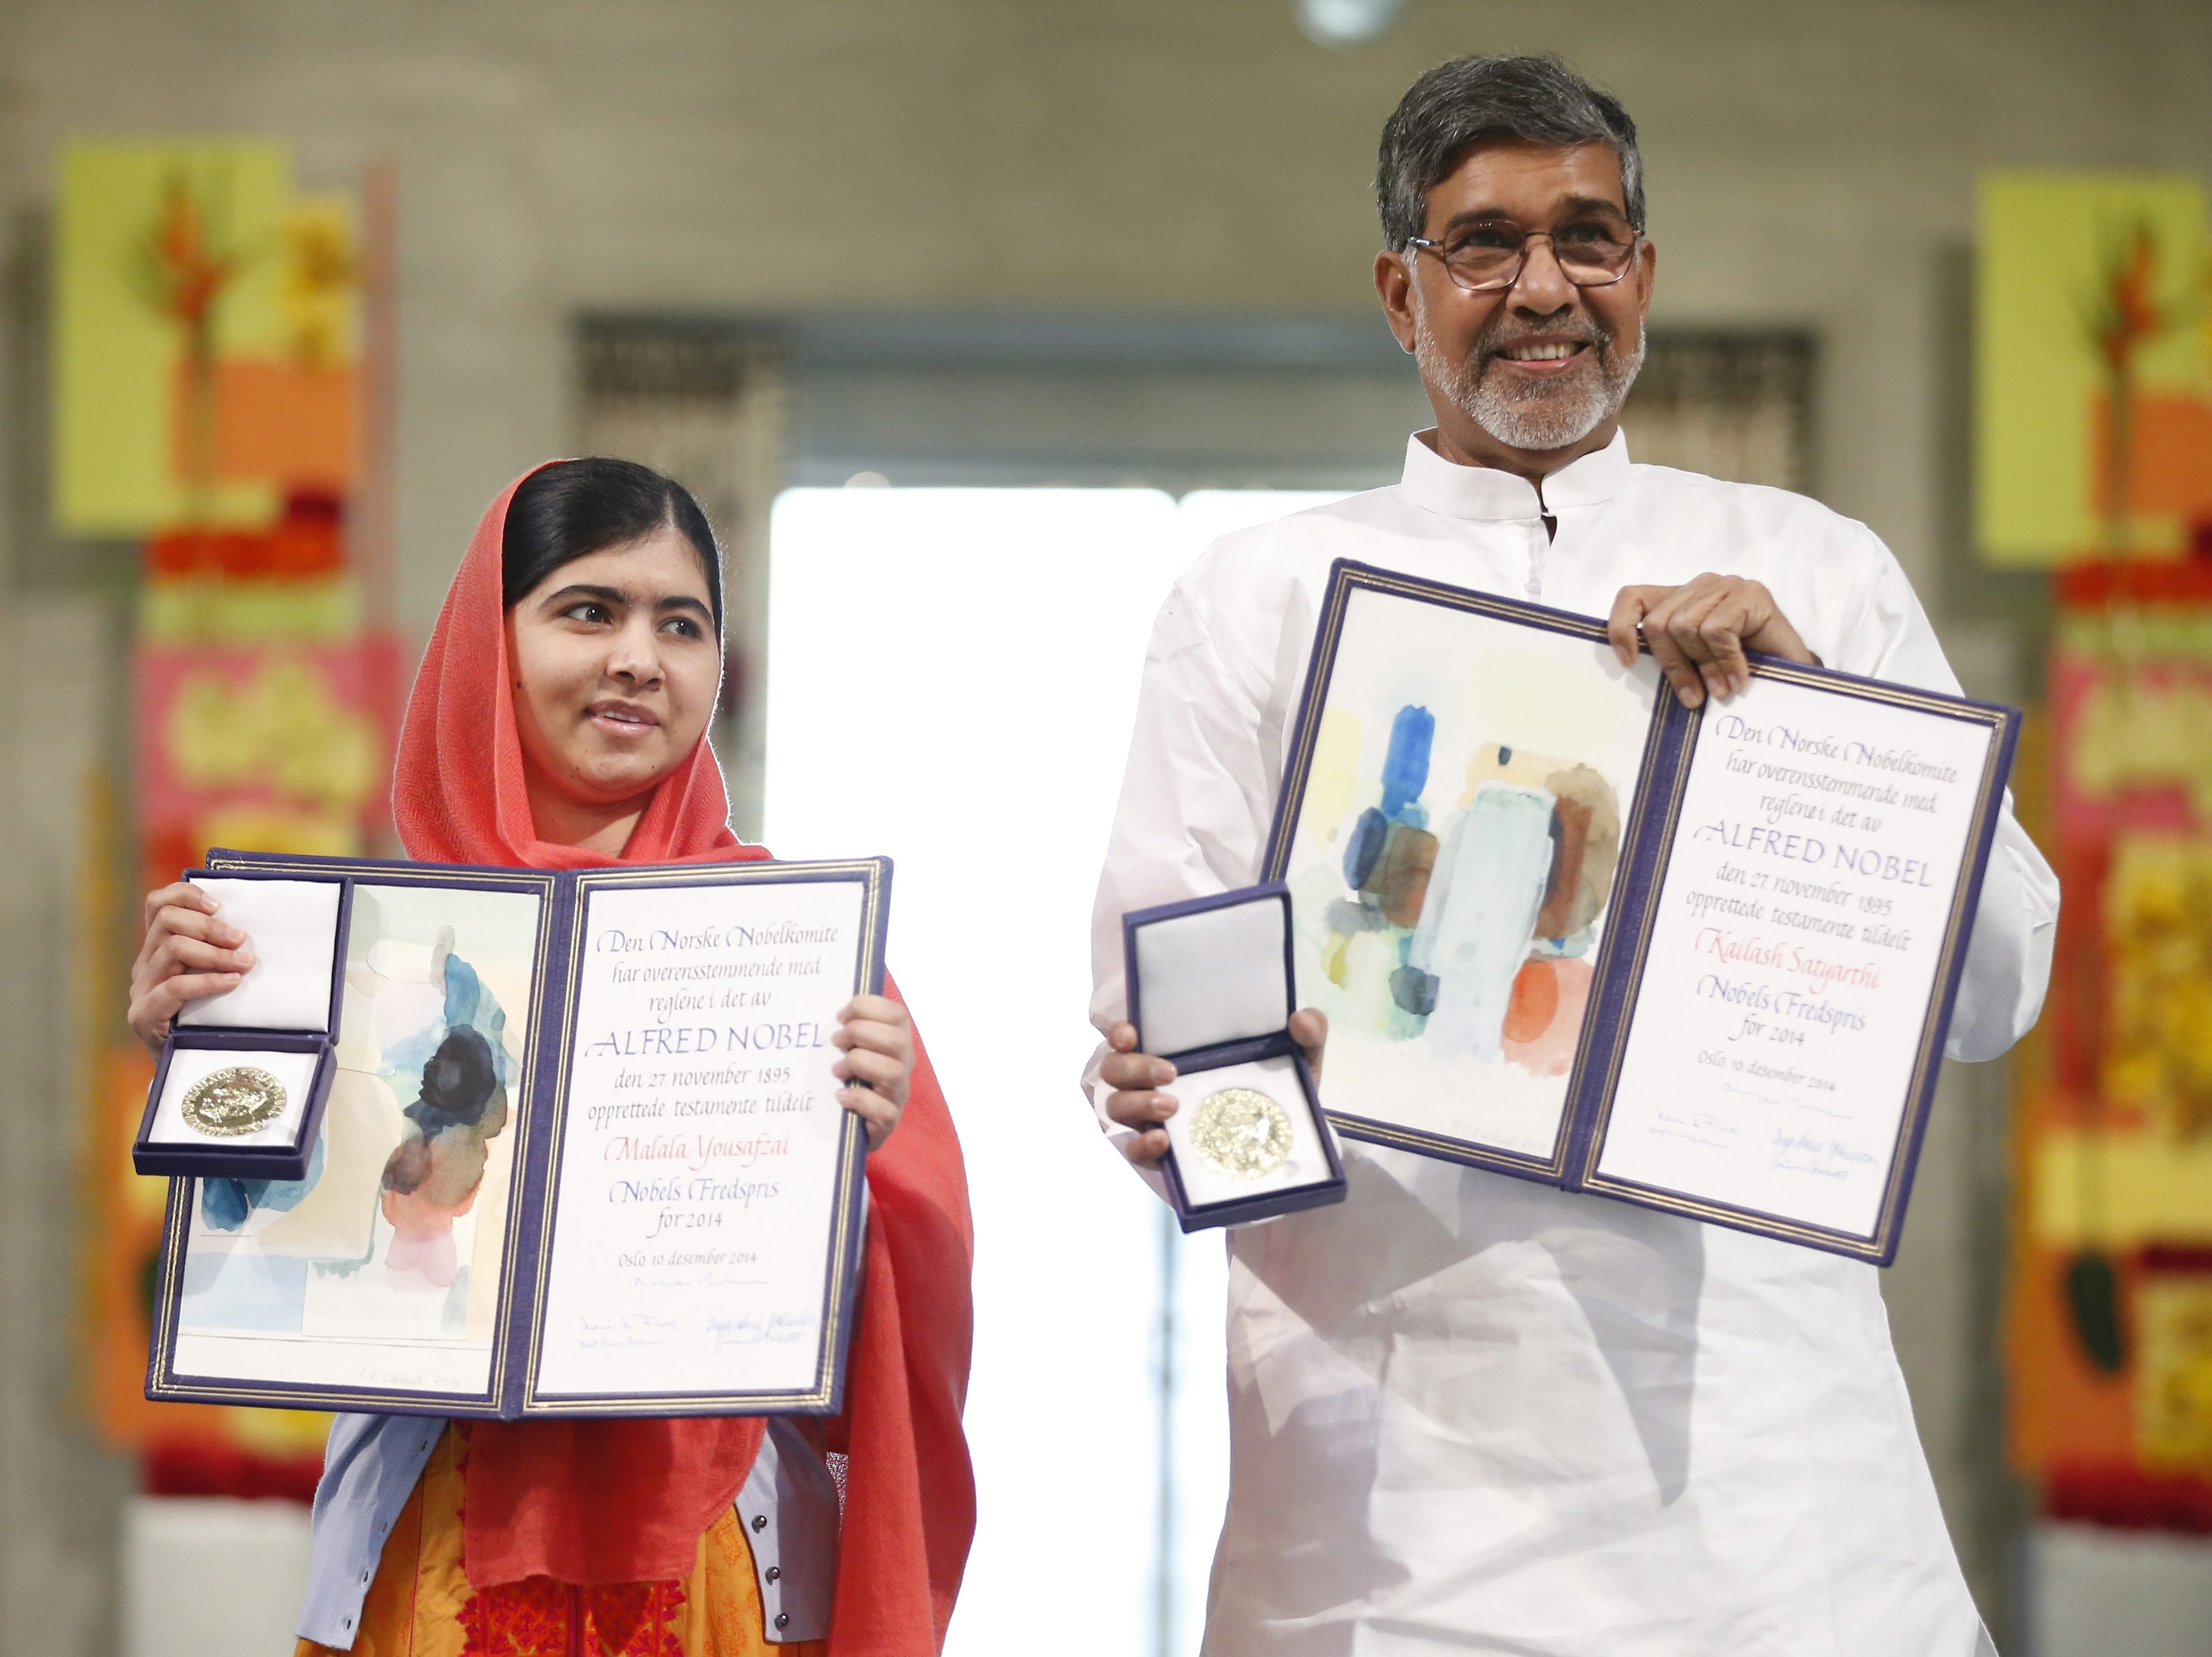 epa04522954 Laureates Kailash Satyarthi (R) and Malala Yousafzai display their medals and diplomas during the awarding ceremony of the 2014 Nobel Peace Prize at Oslo City Hall, Norway, 10 December 2014. Teen education a